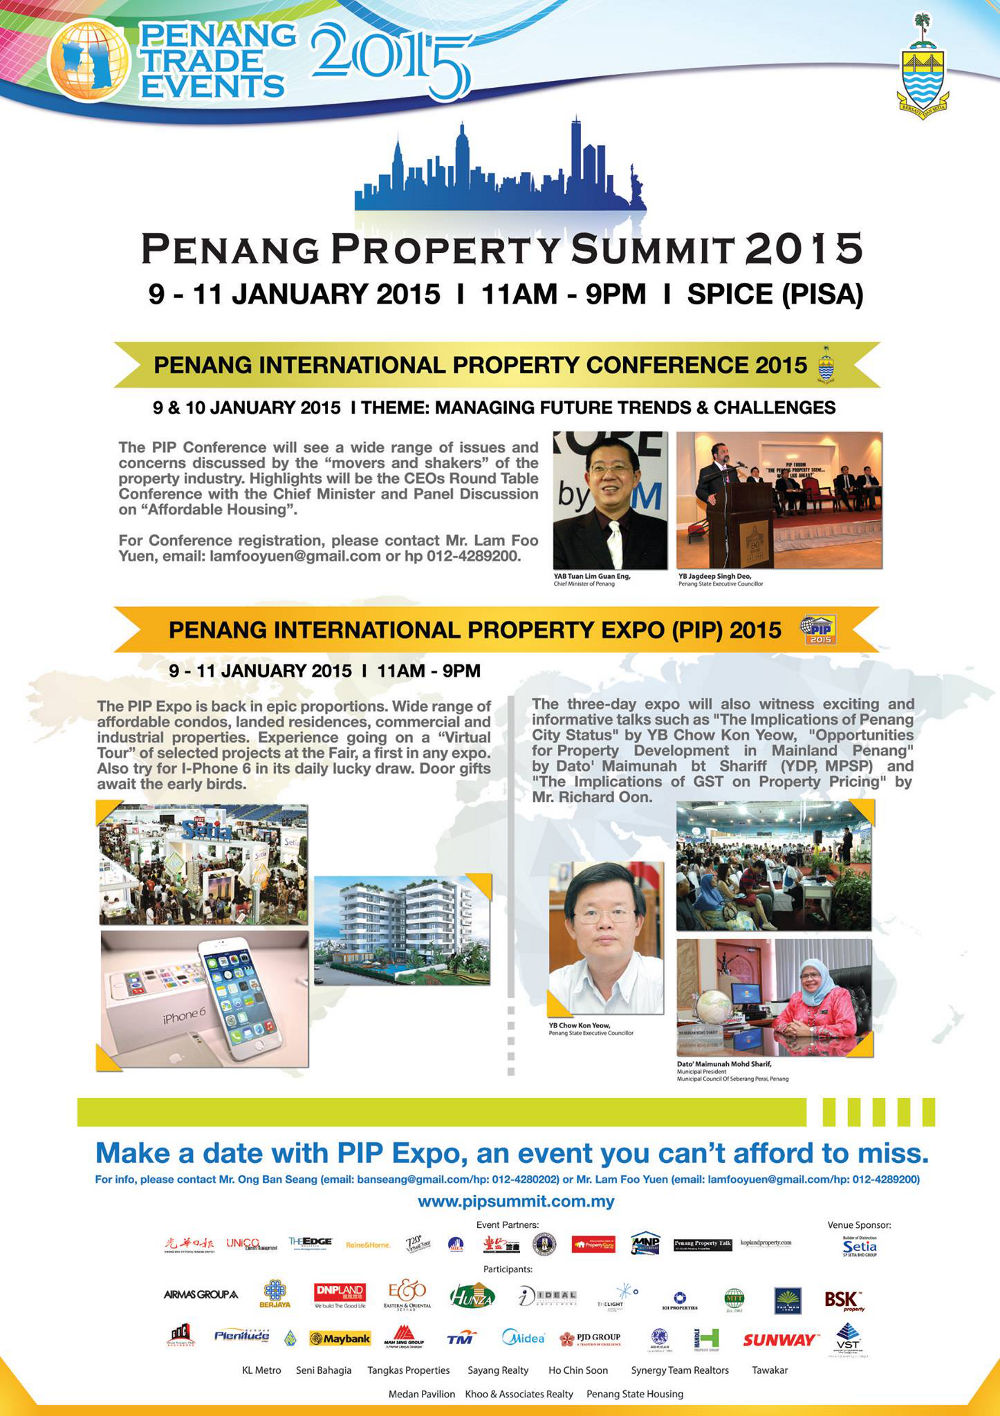 penang-property-summit-2015